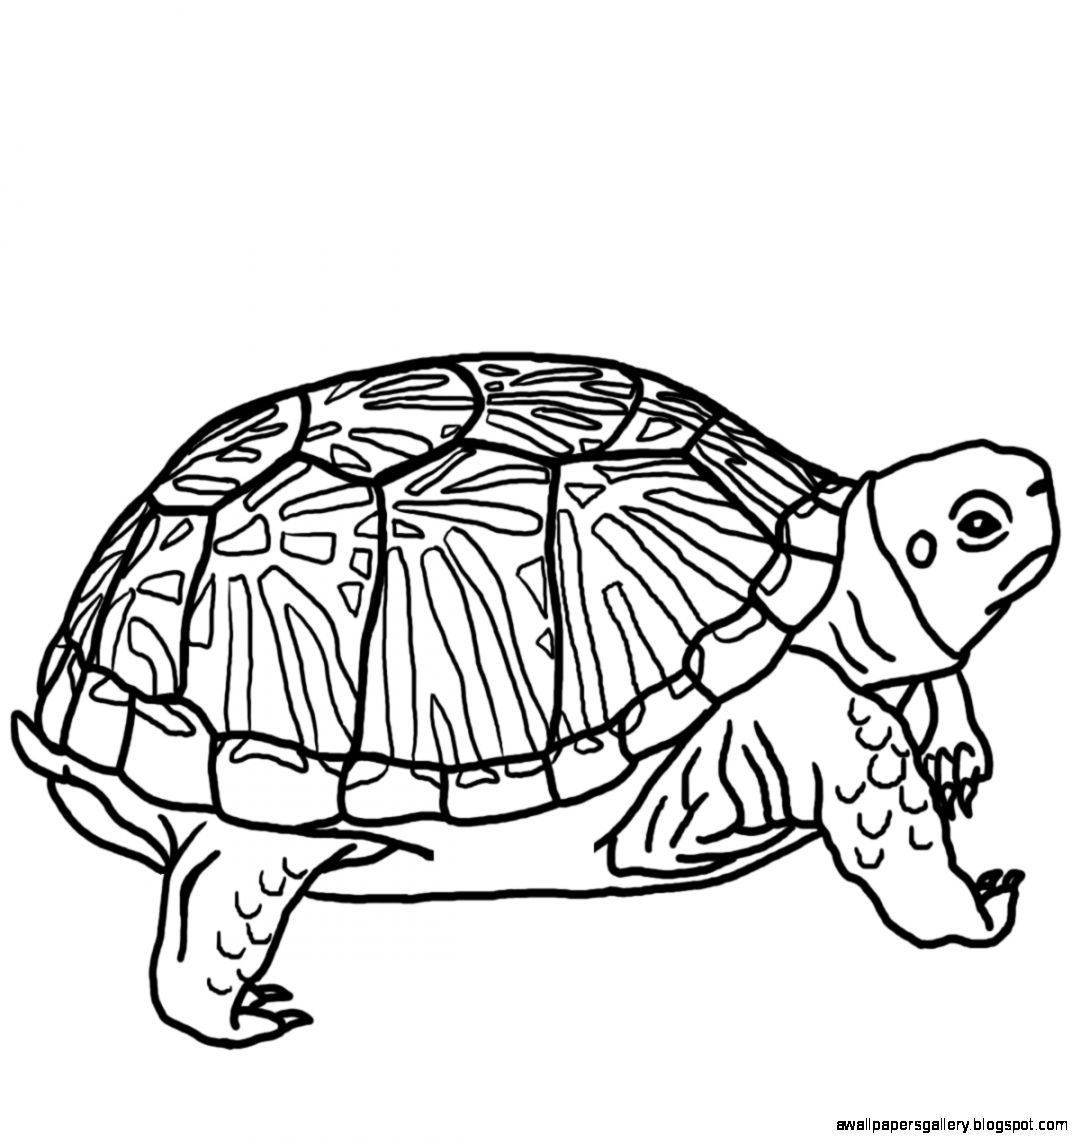 Turtle Clipart Black And White Wallpapers Gallery